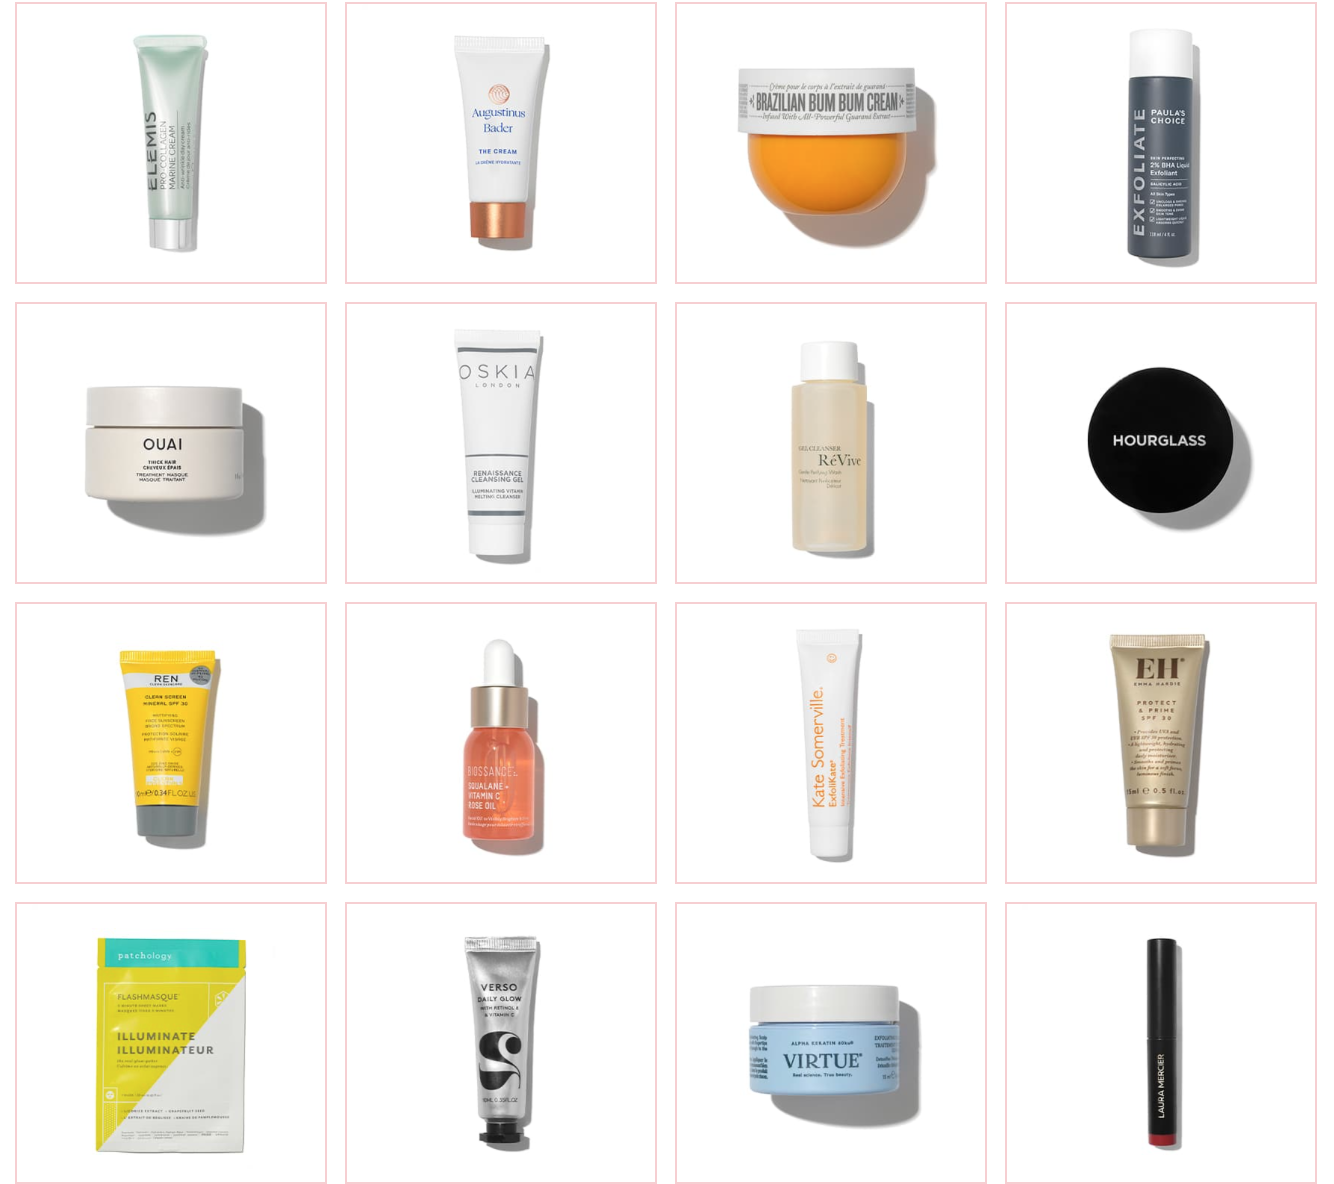 space nk autumn discovery beauty gift 2021 contents part 1